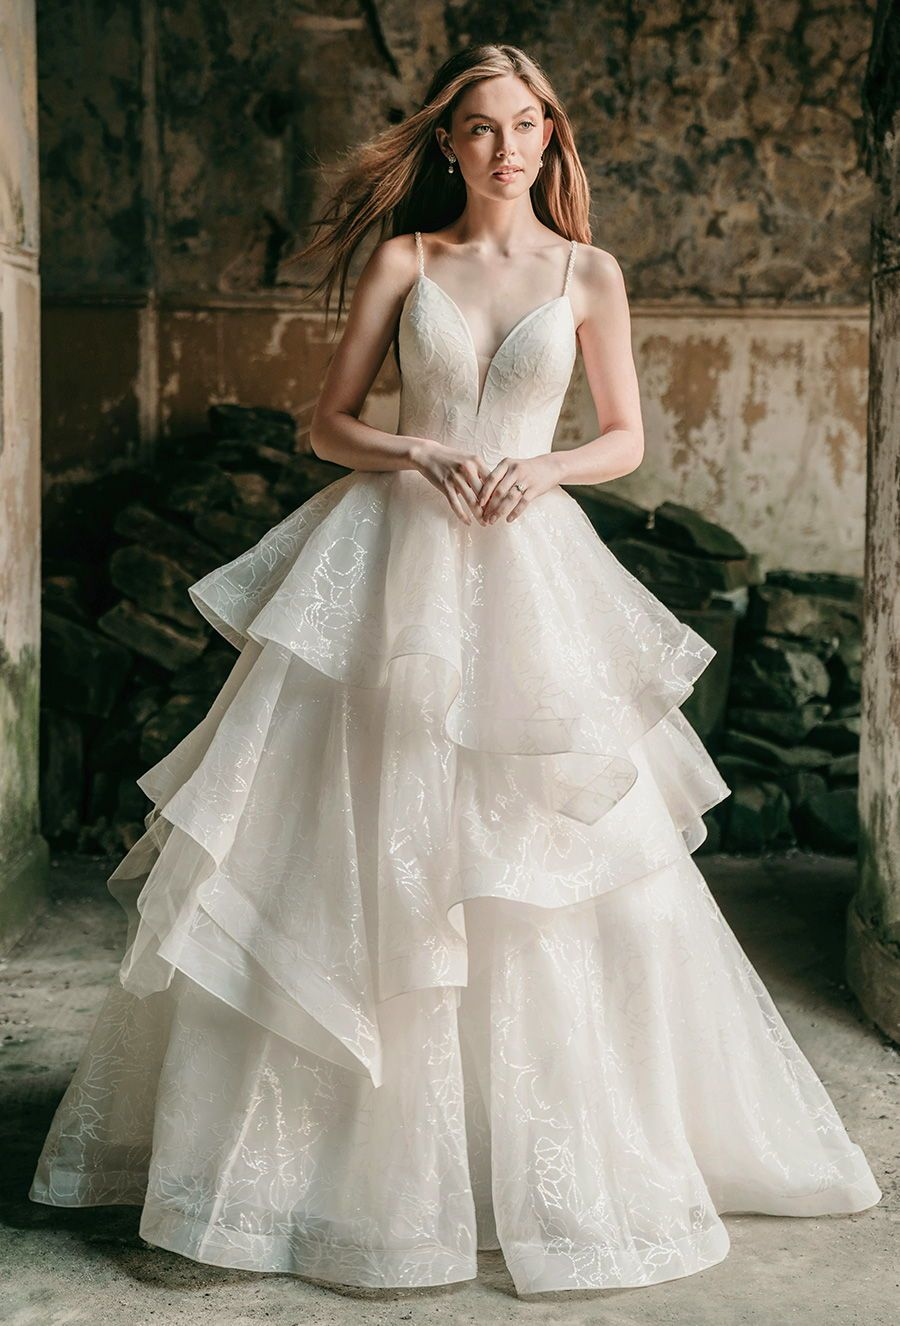 We Can't Get Enough of These Madison James Wedding Dresses